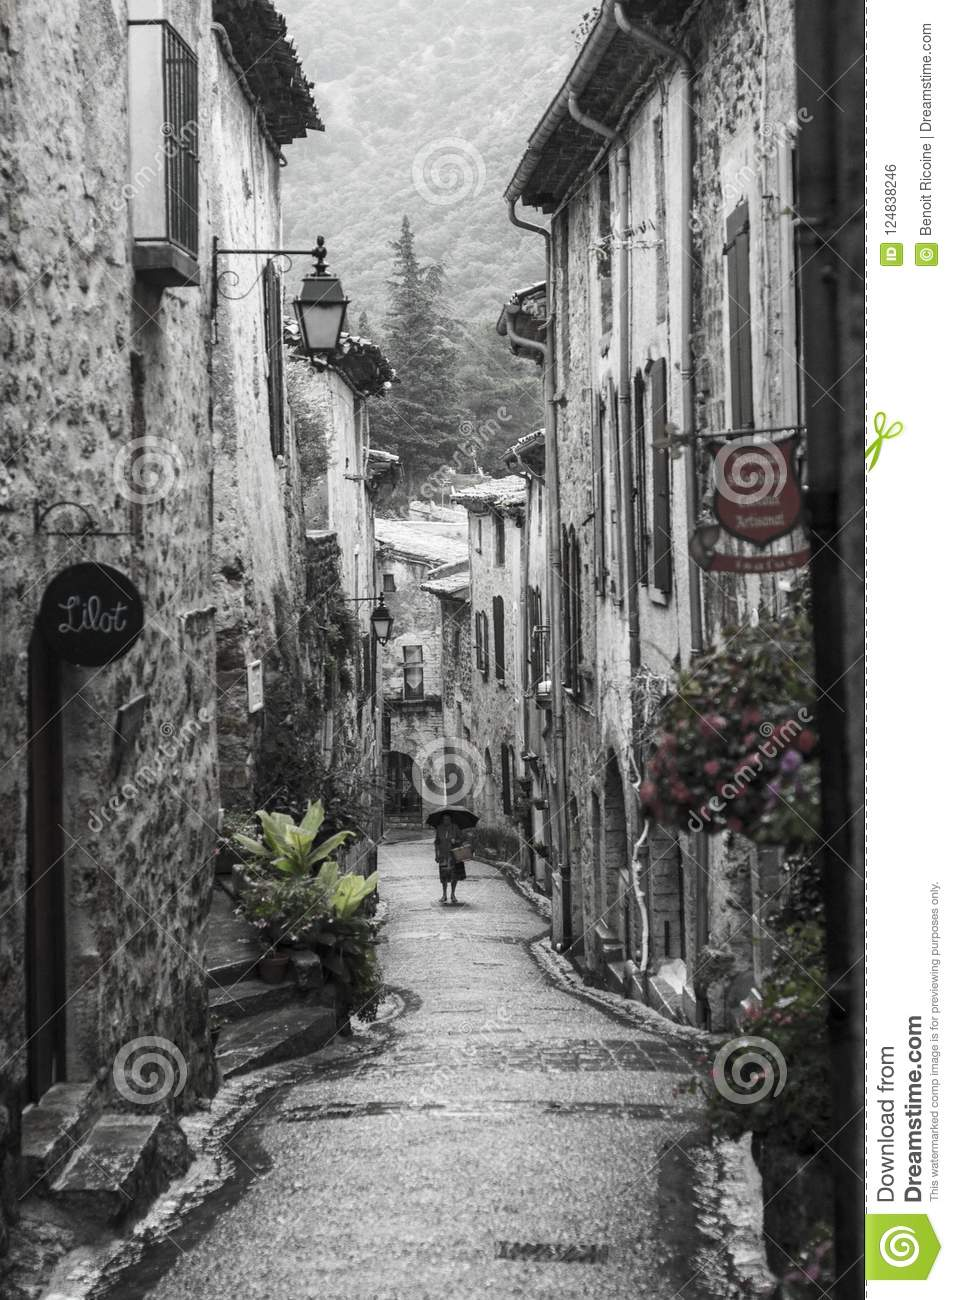 Woman walks by in a street of the medieval French village of Saint-Guilhem-le-Désert